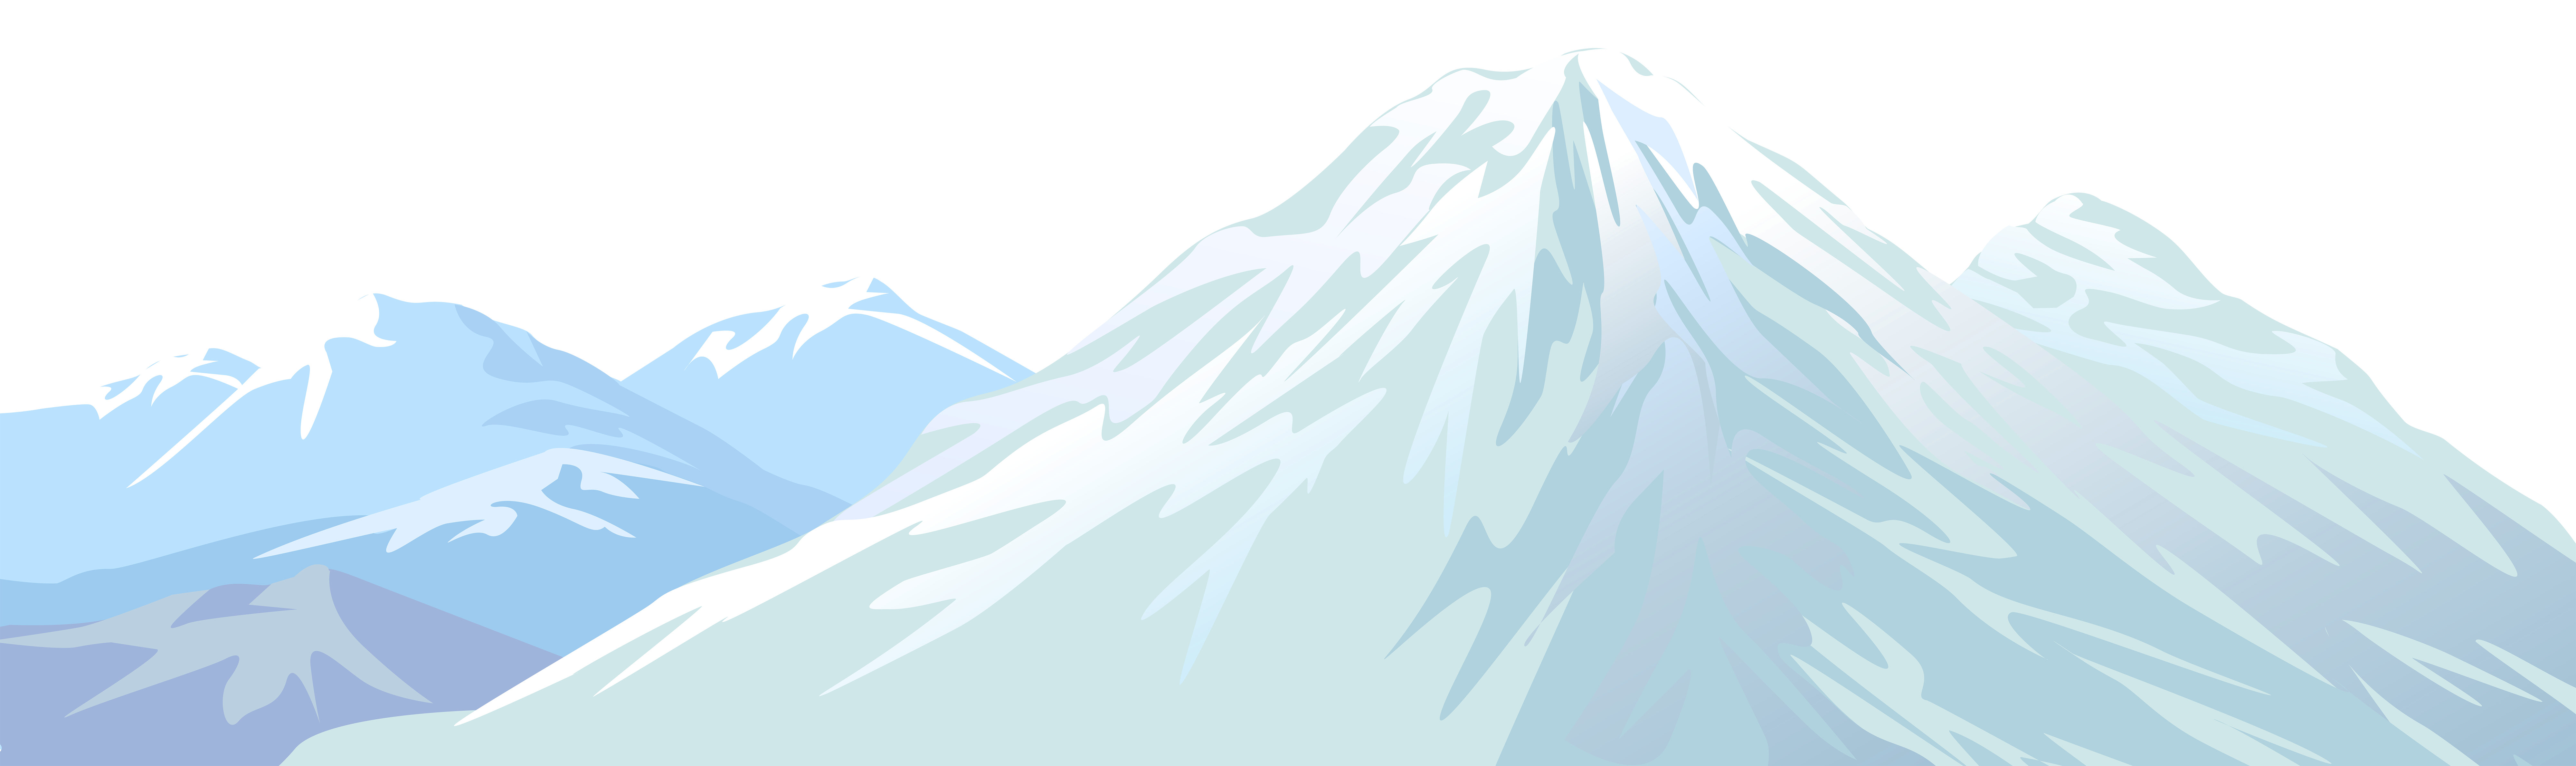 picture free download Mountains clipart sea. Winter snowy mountain transparent.